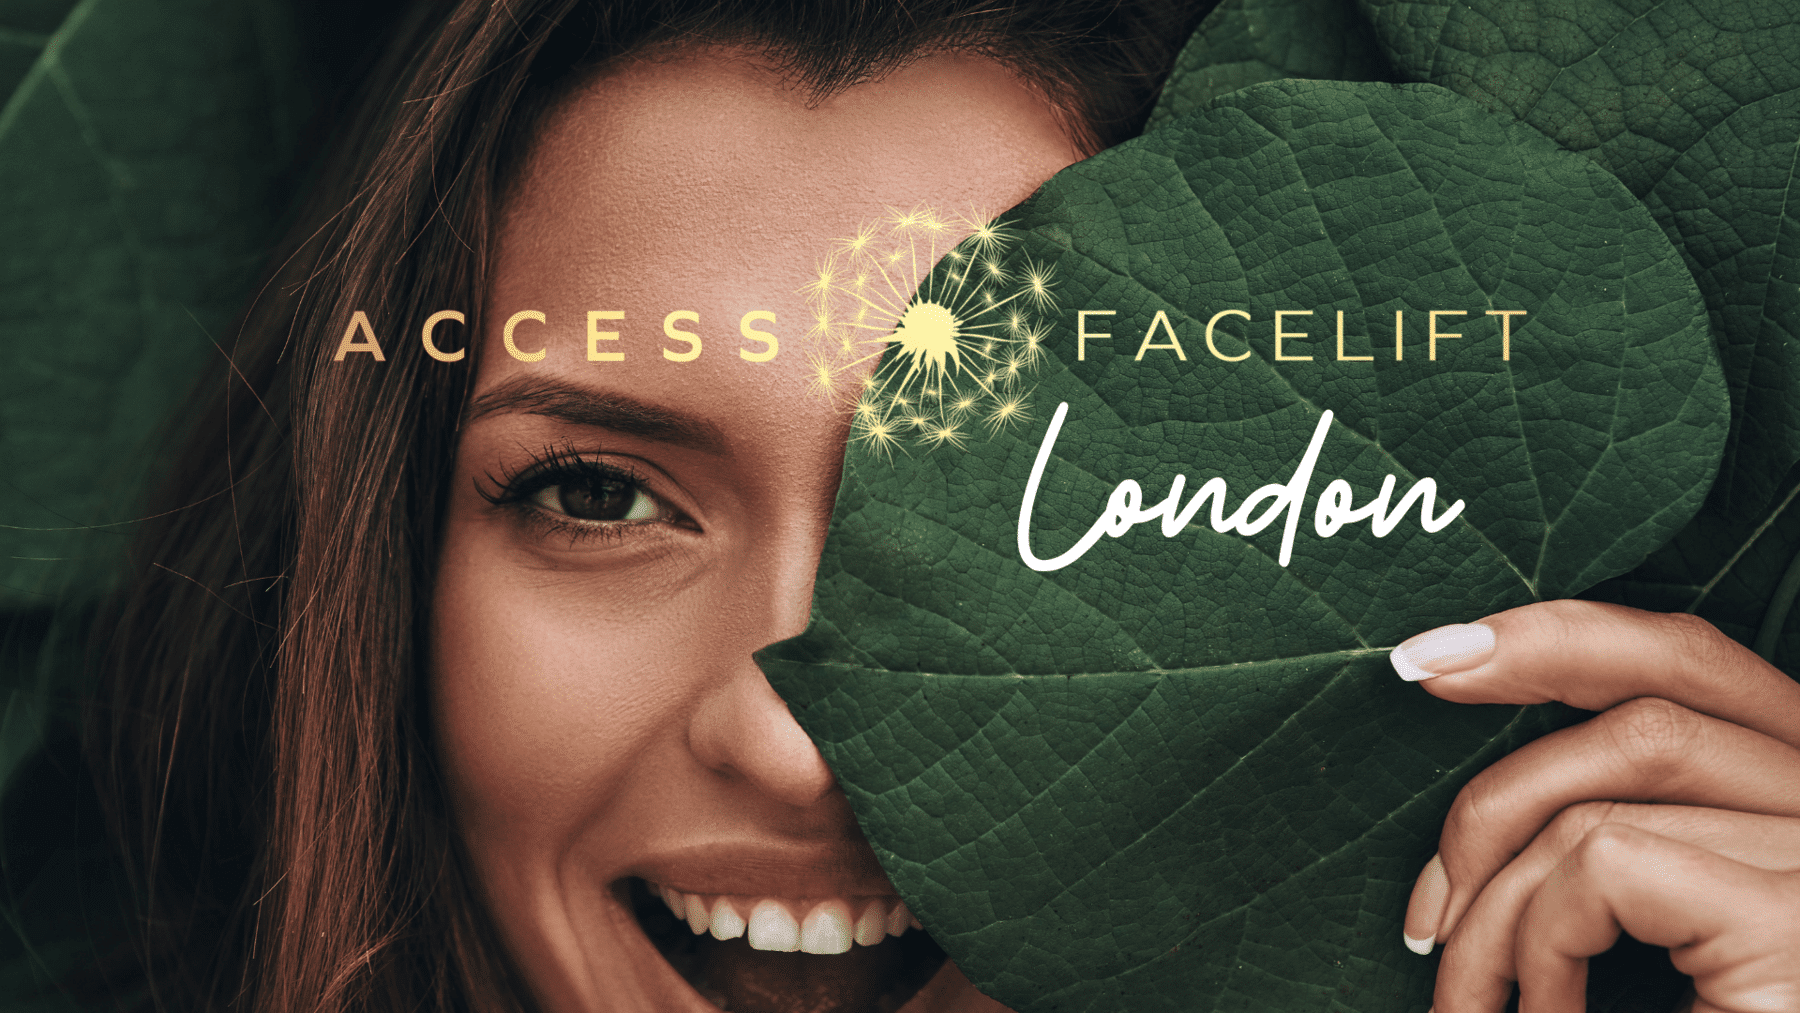 I offer access face lift london